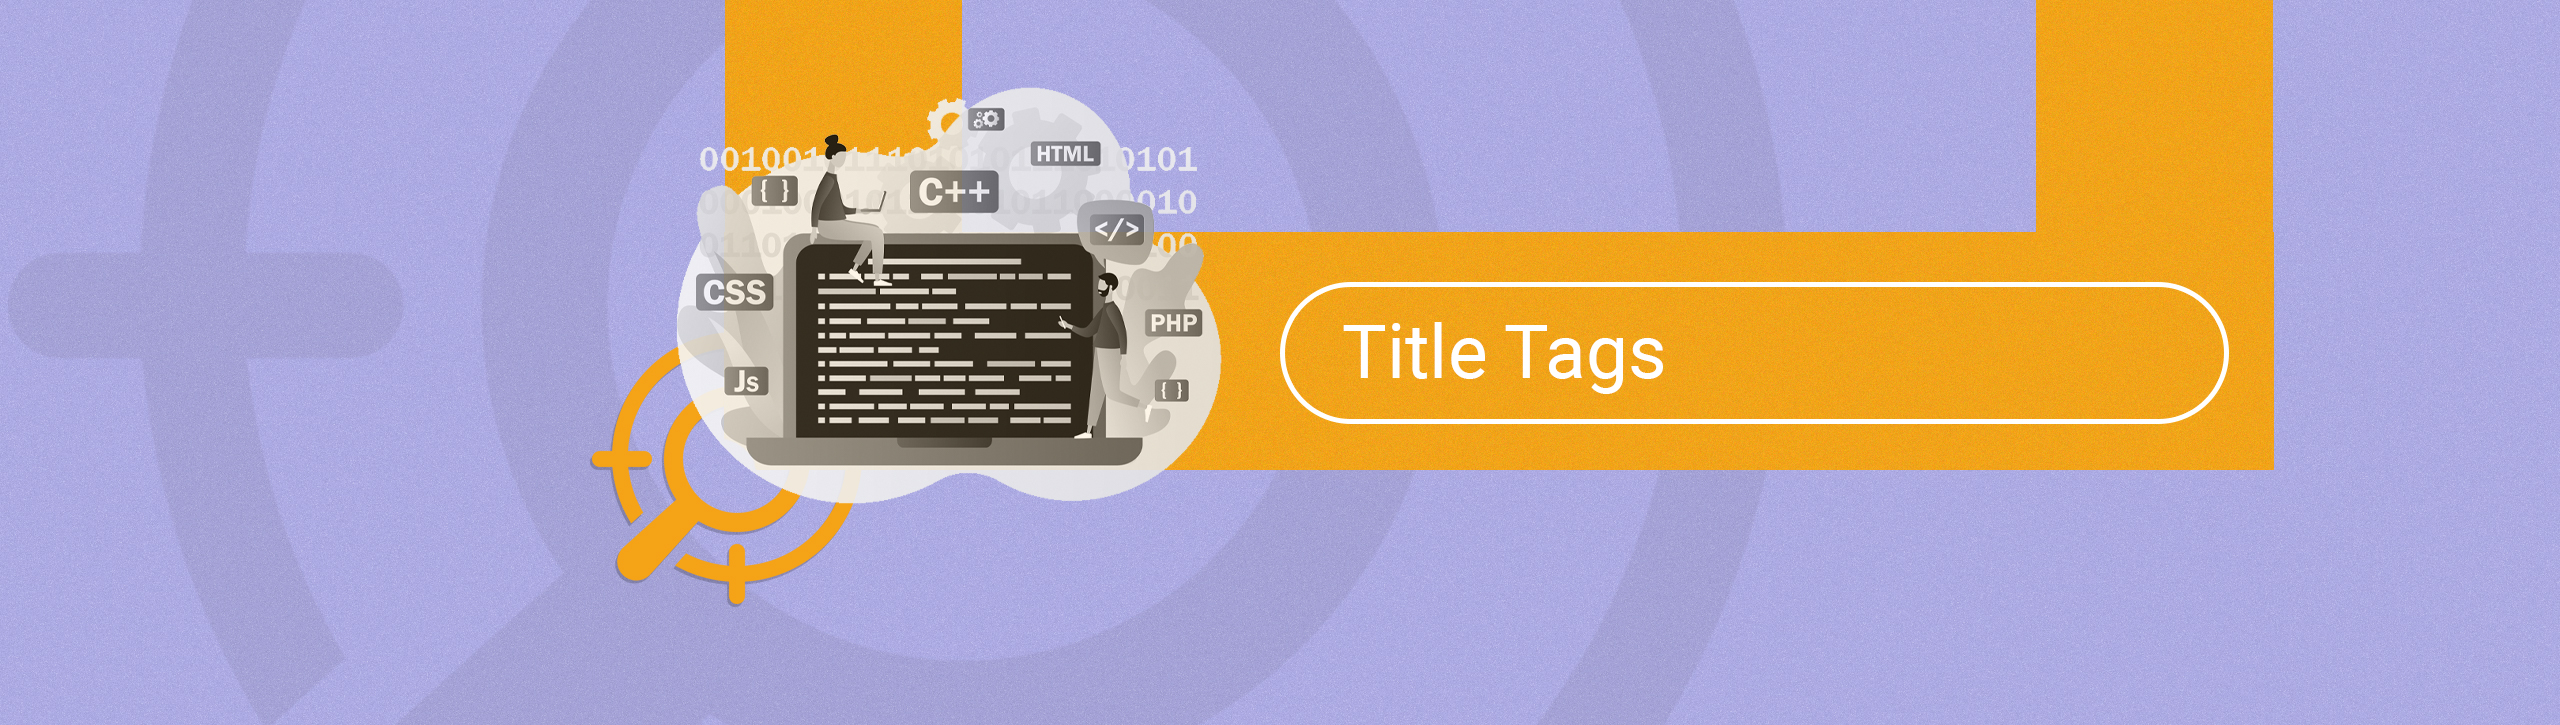 Are Title Tags Still Important for SEO in 2021?